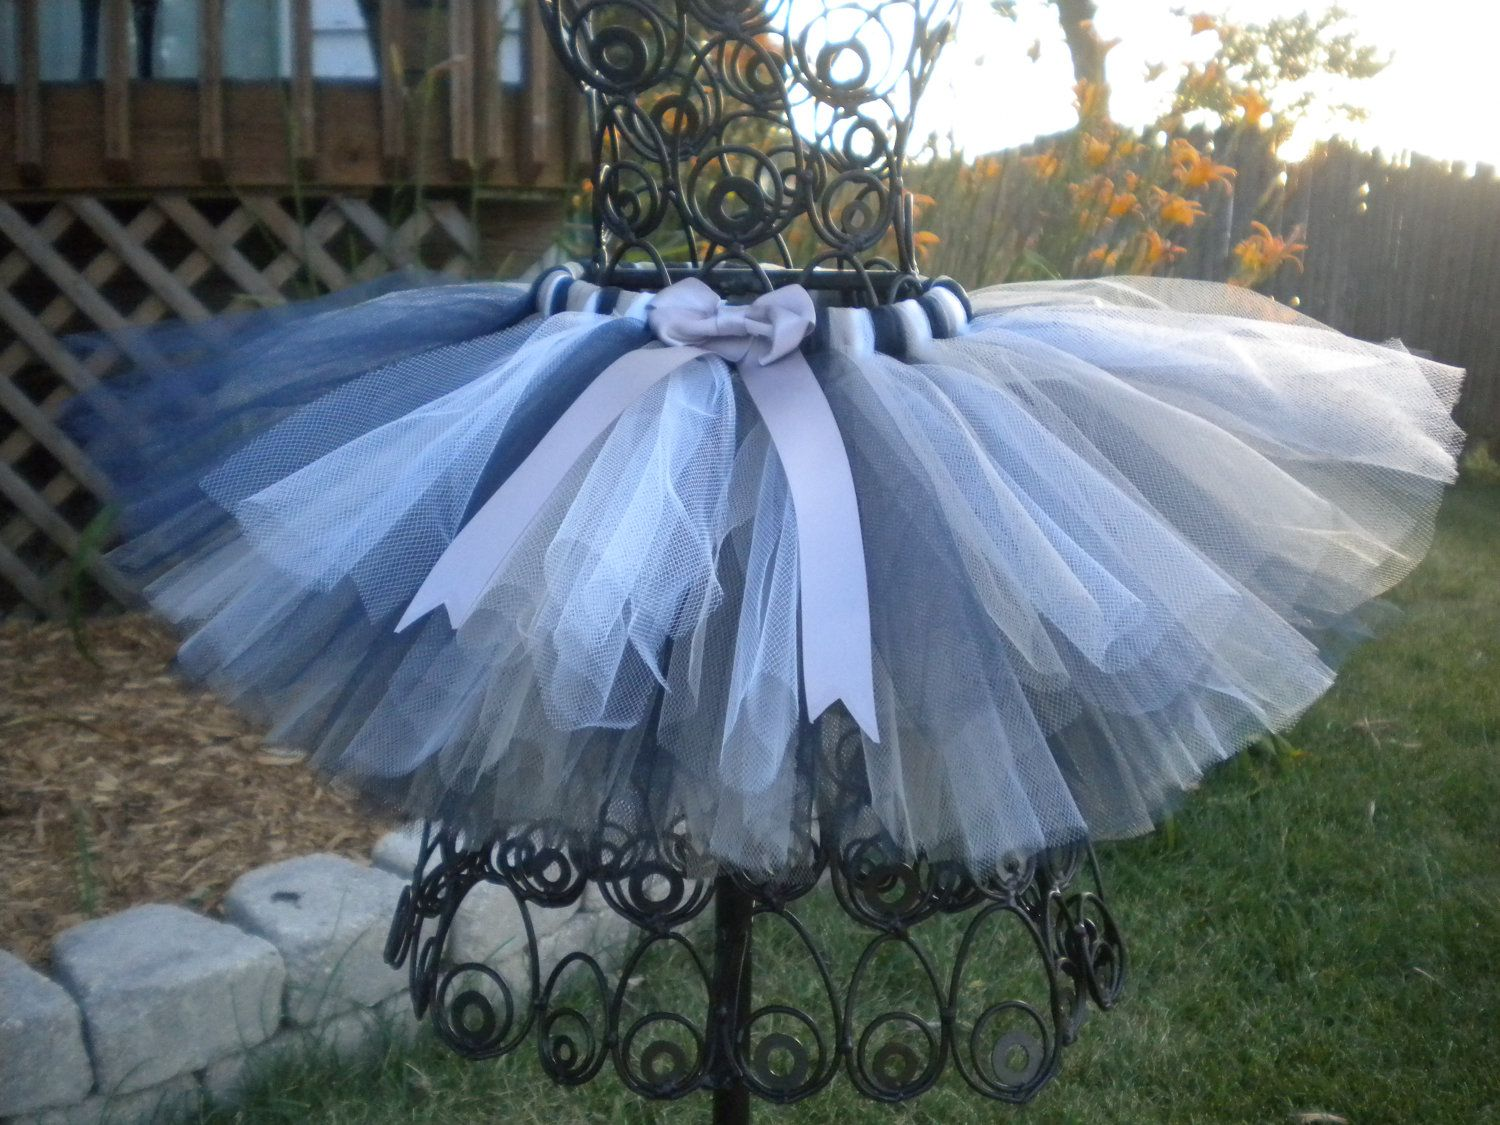 Custom Sports Tutu New York Yankees Colors Navy Silver White Can Do Most Team Tutus For Babies And Toddlers